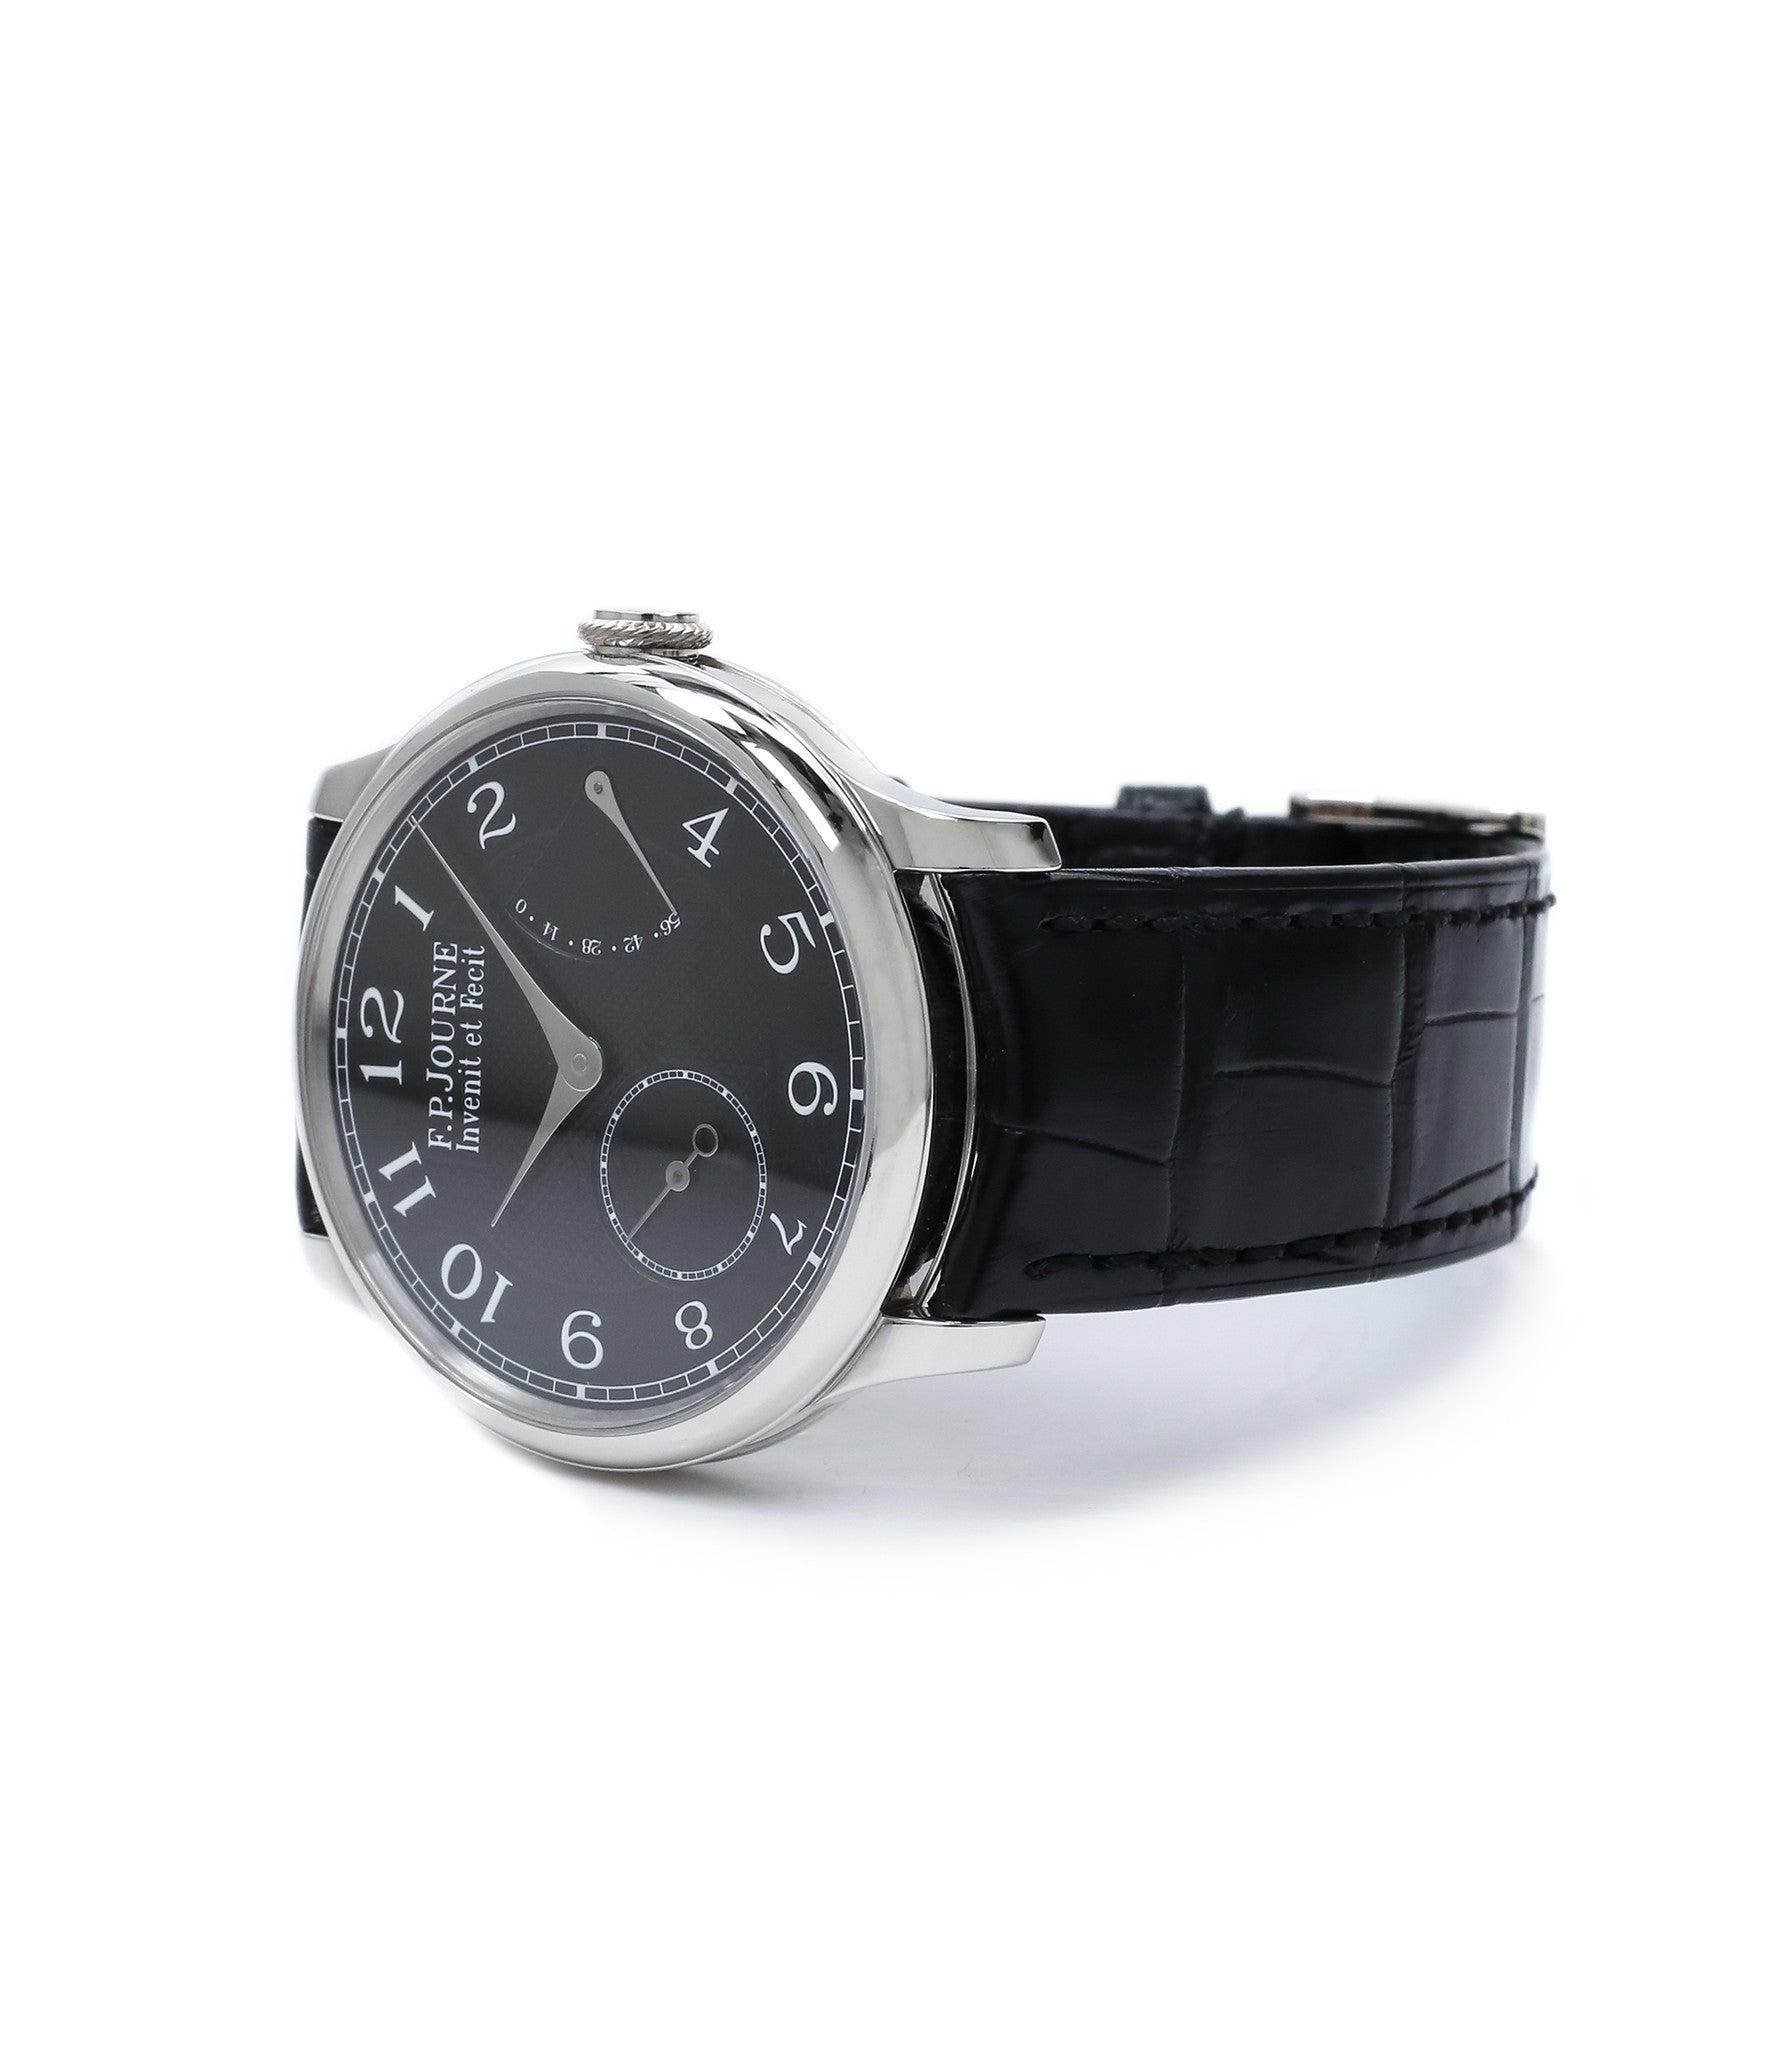 dress watch F. P. Journe Chronometre Souverain Black label platinum 38 mm watch online at A Collected Man